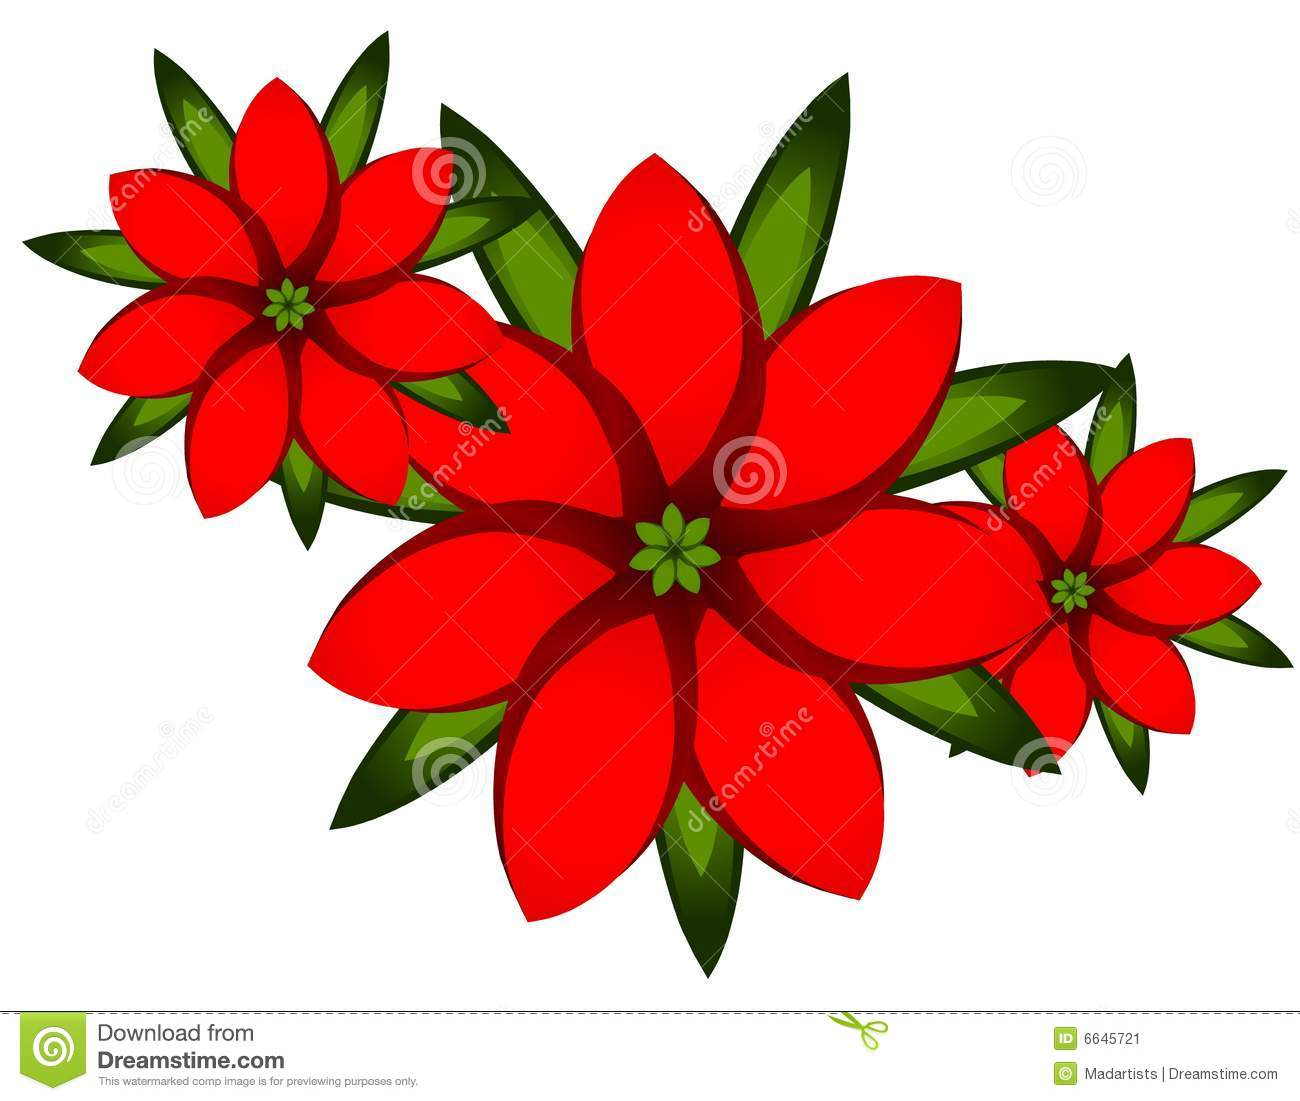 red xmas poinsettia clip art stock image - Christmas Poinsettia